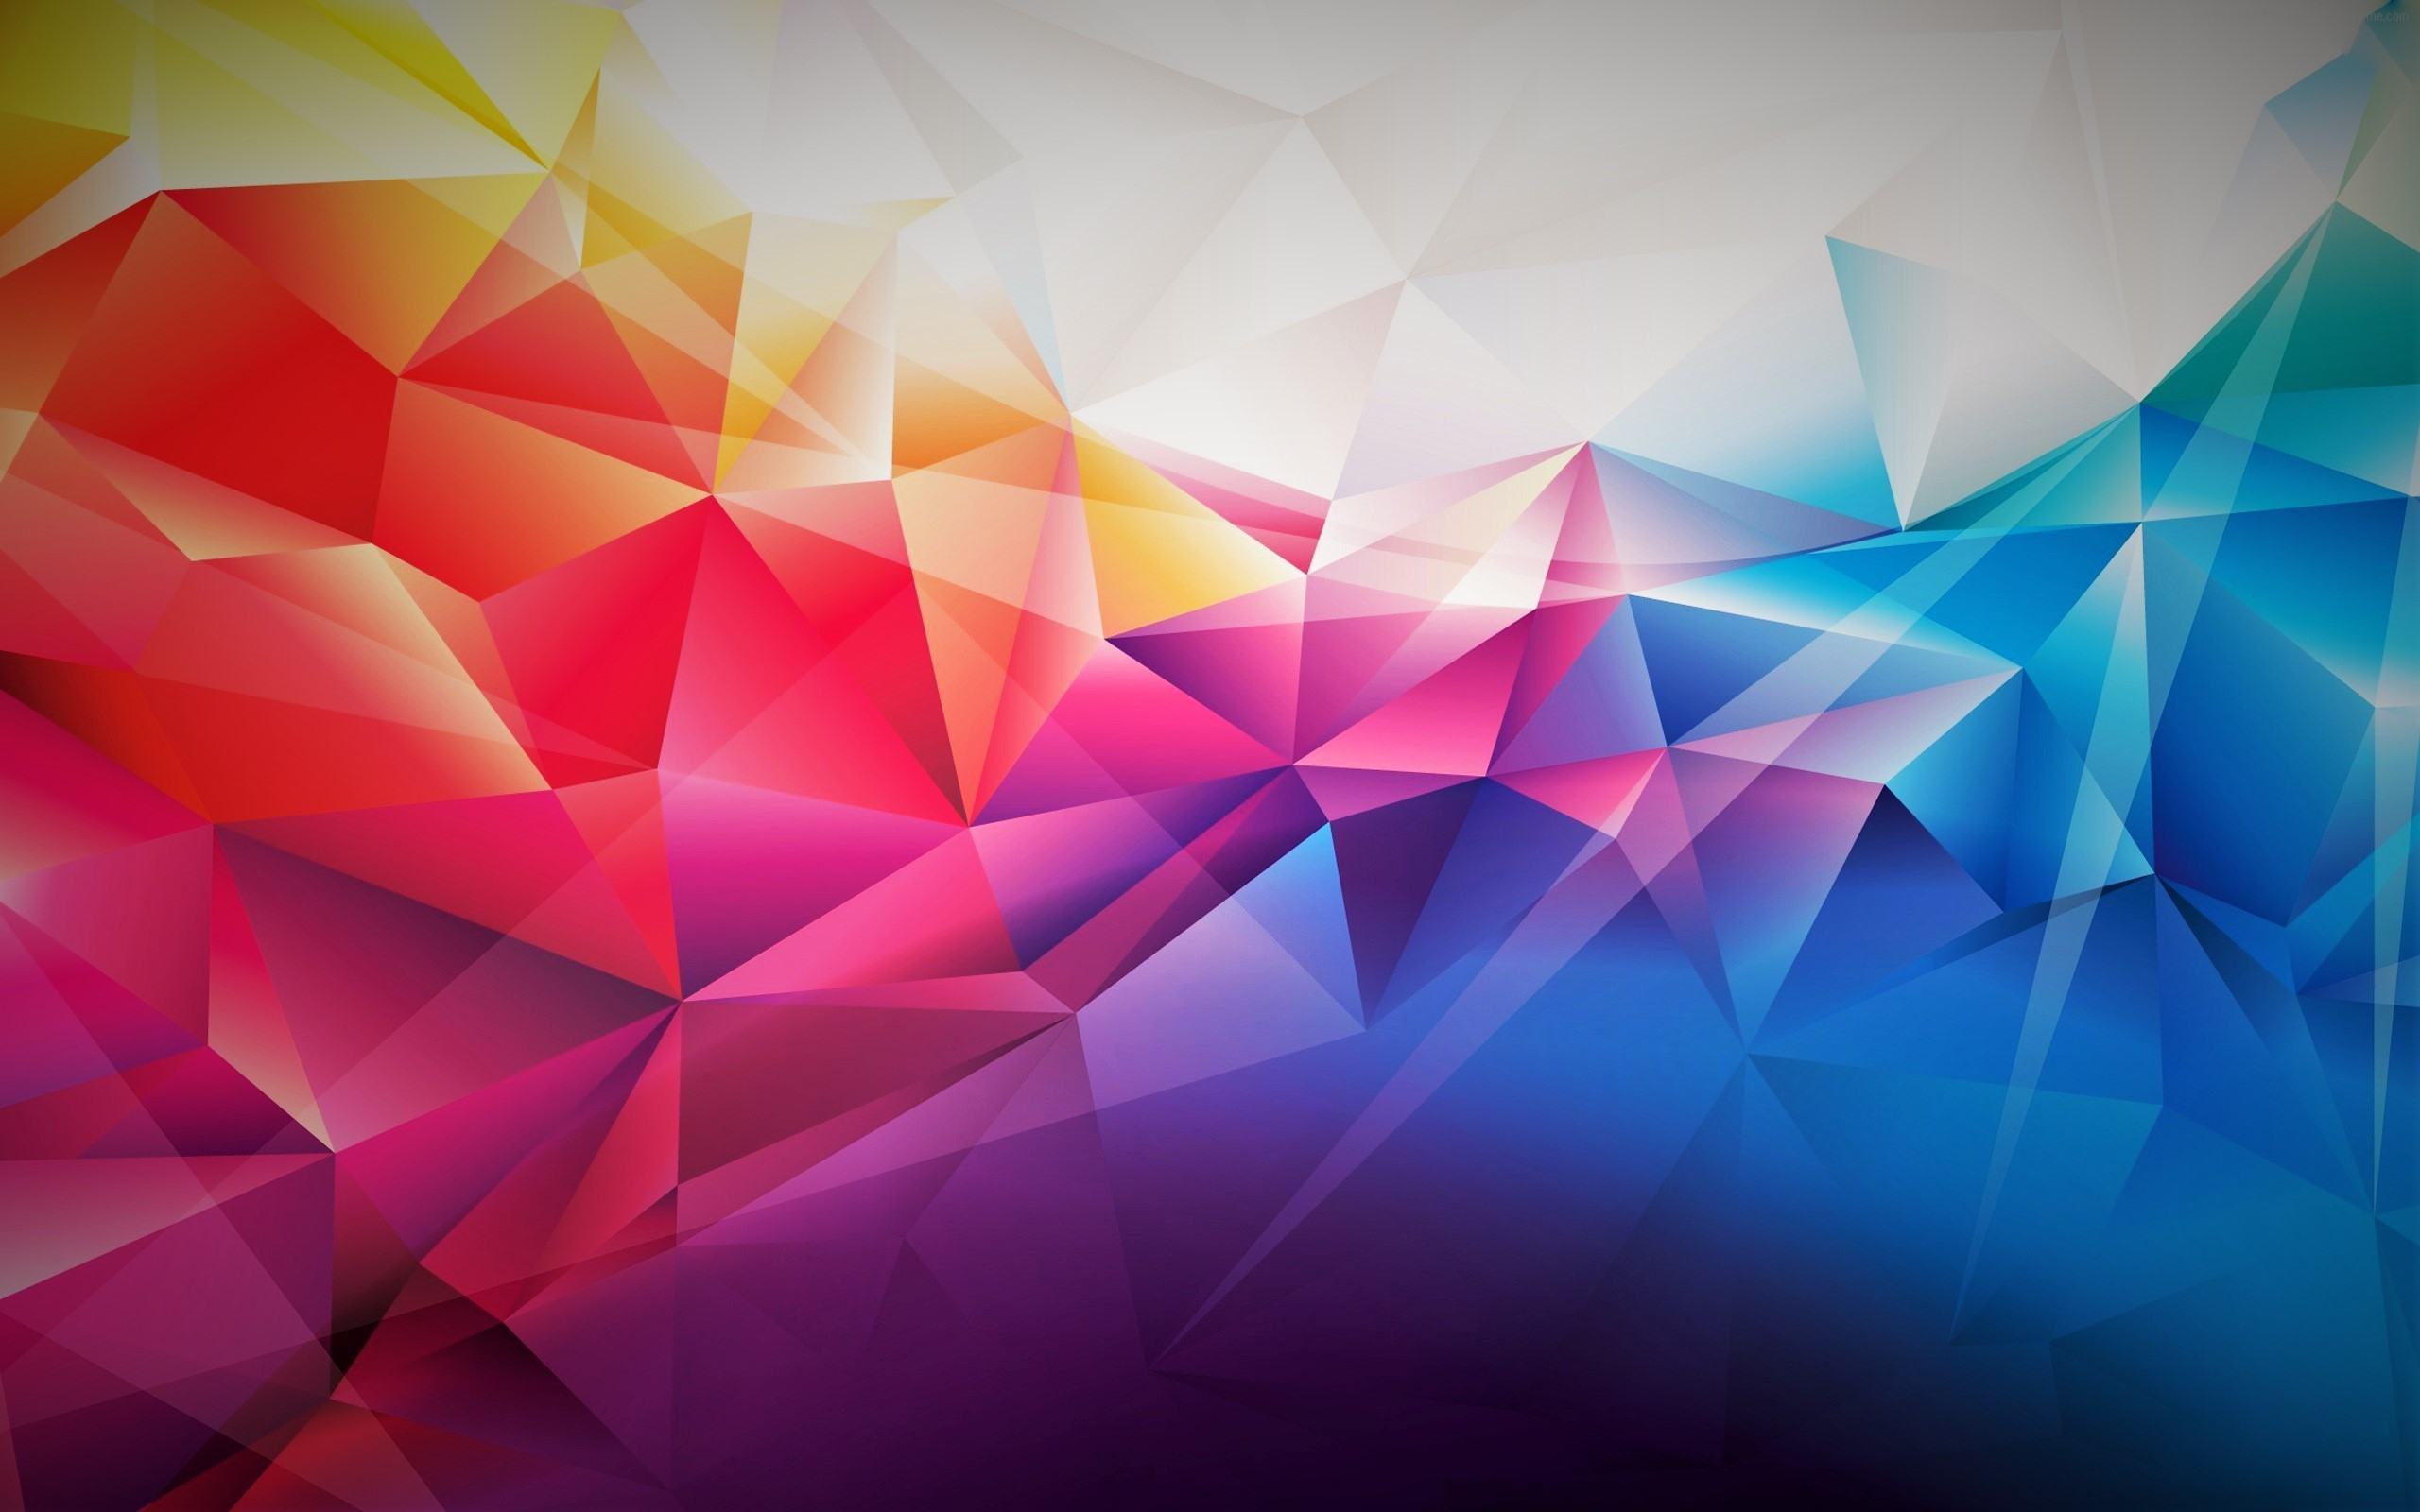 General abstract blue yellow red pink purple orange colorful